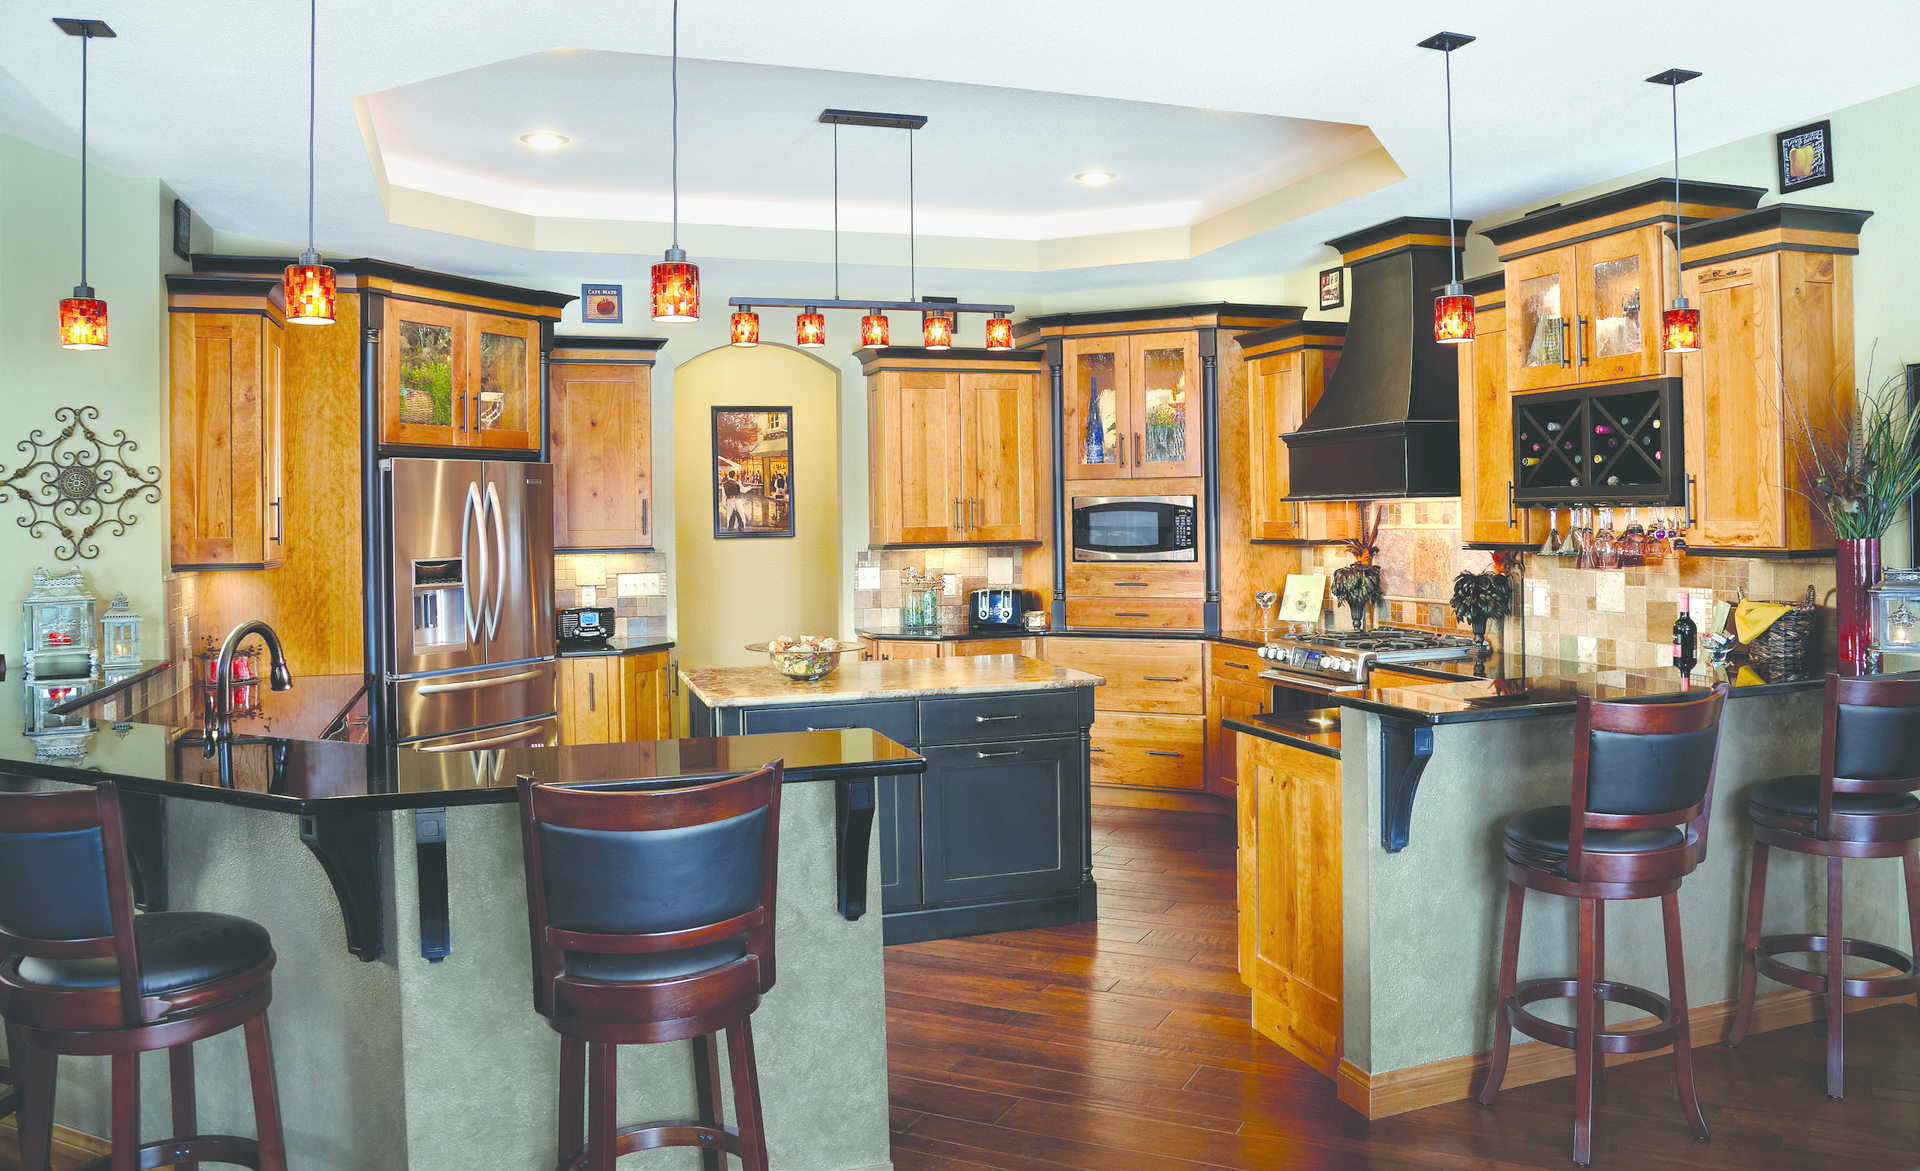 Haas Cabinet Co. Kitchen Cabinets | For Residential Pros